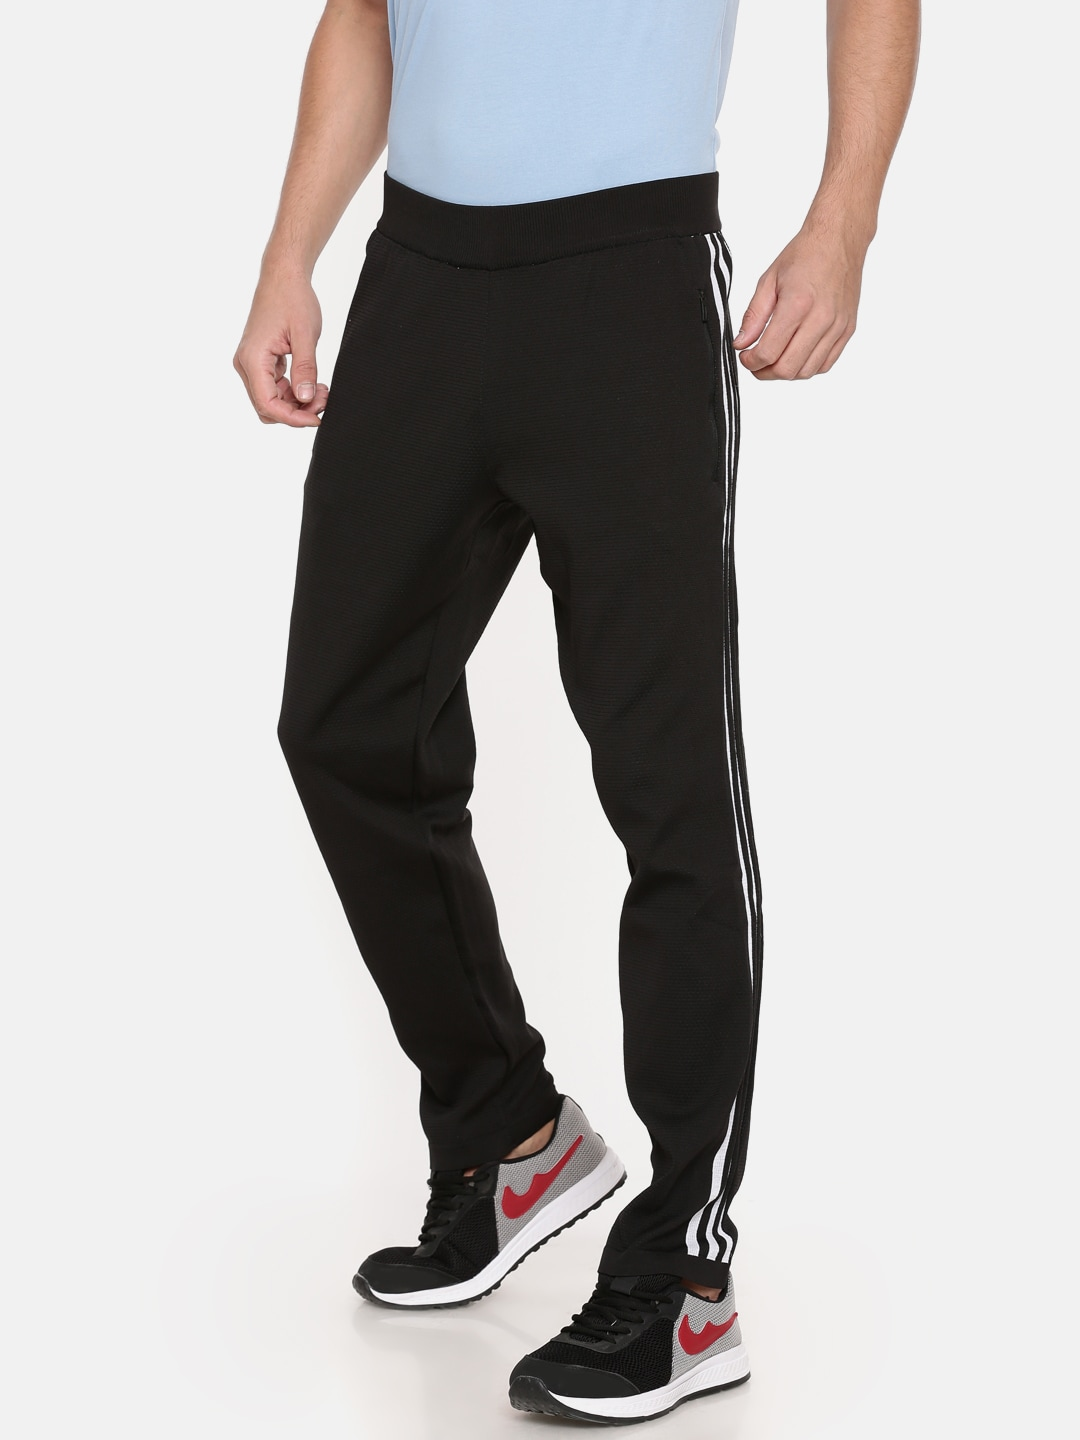 9b19b6d2a Adidas Tops Track Pants Pants Sports Shoes - Buy Adidas Tops Track Pants  Pants Sports Shoes online in India